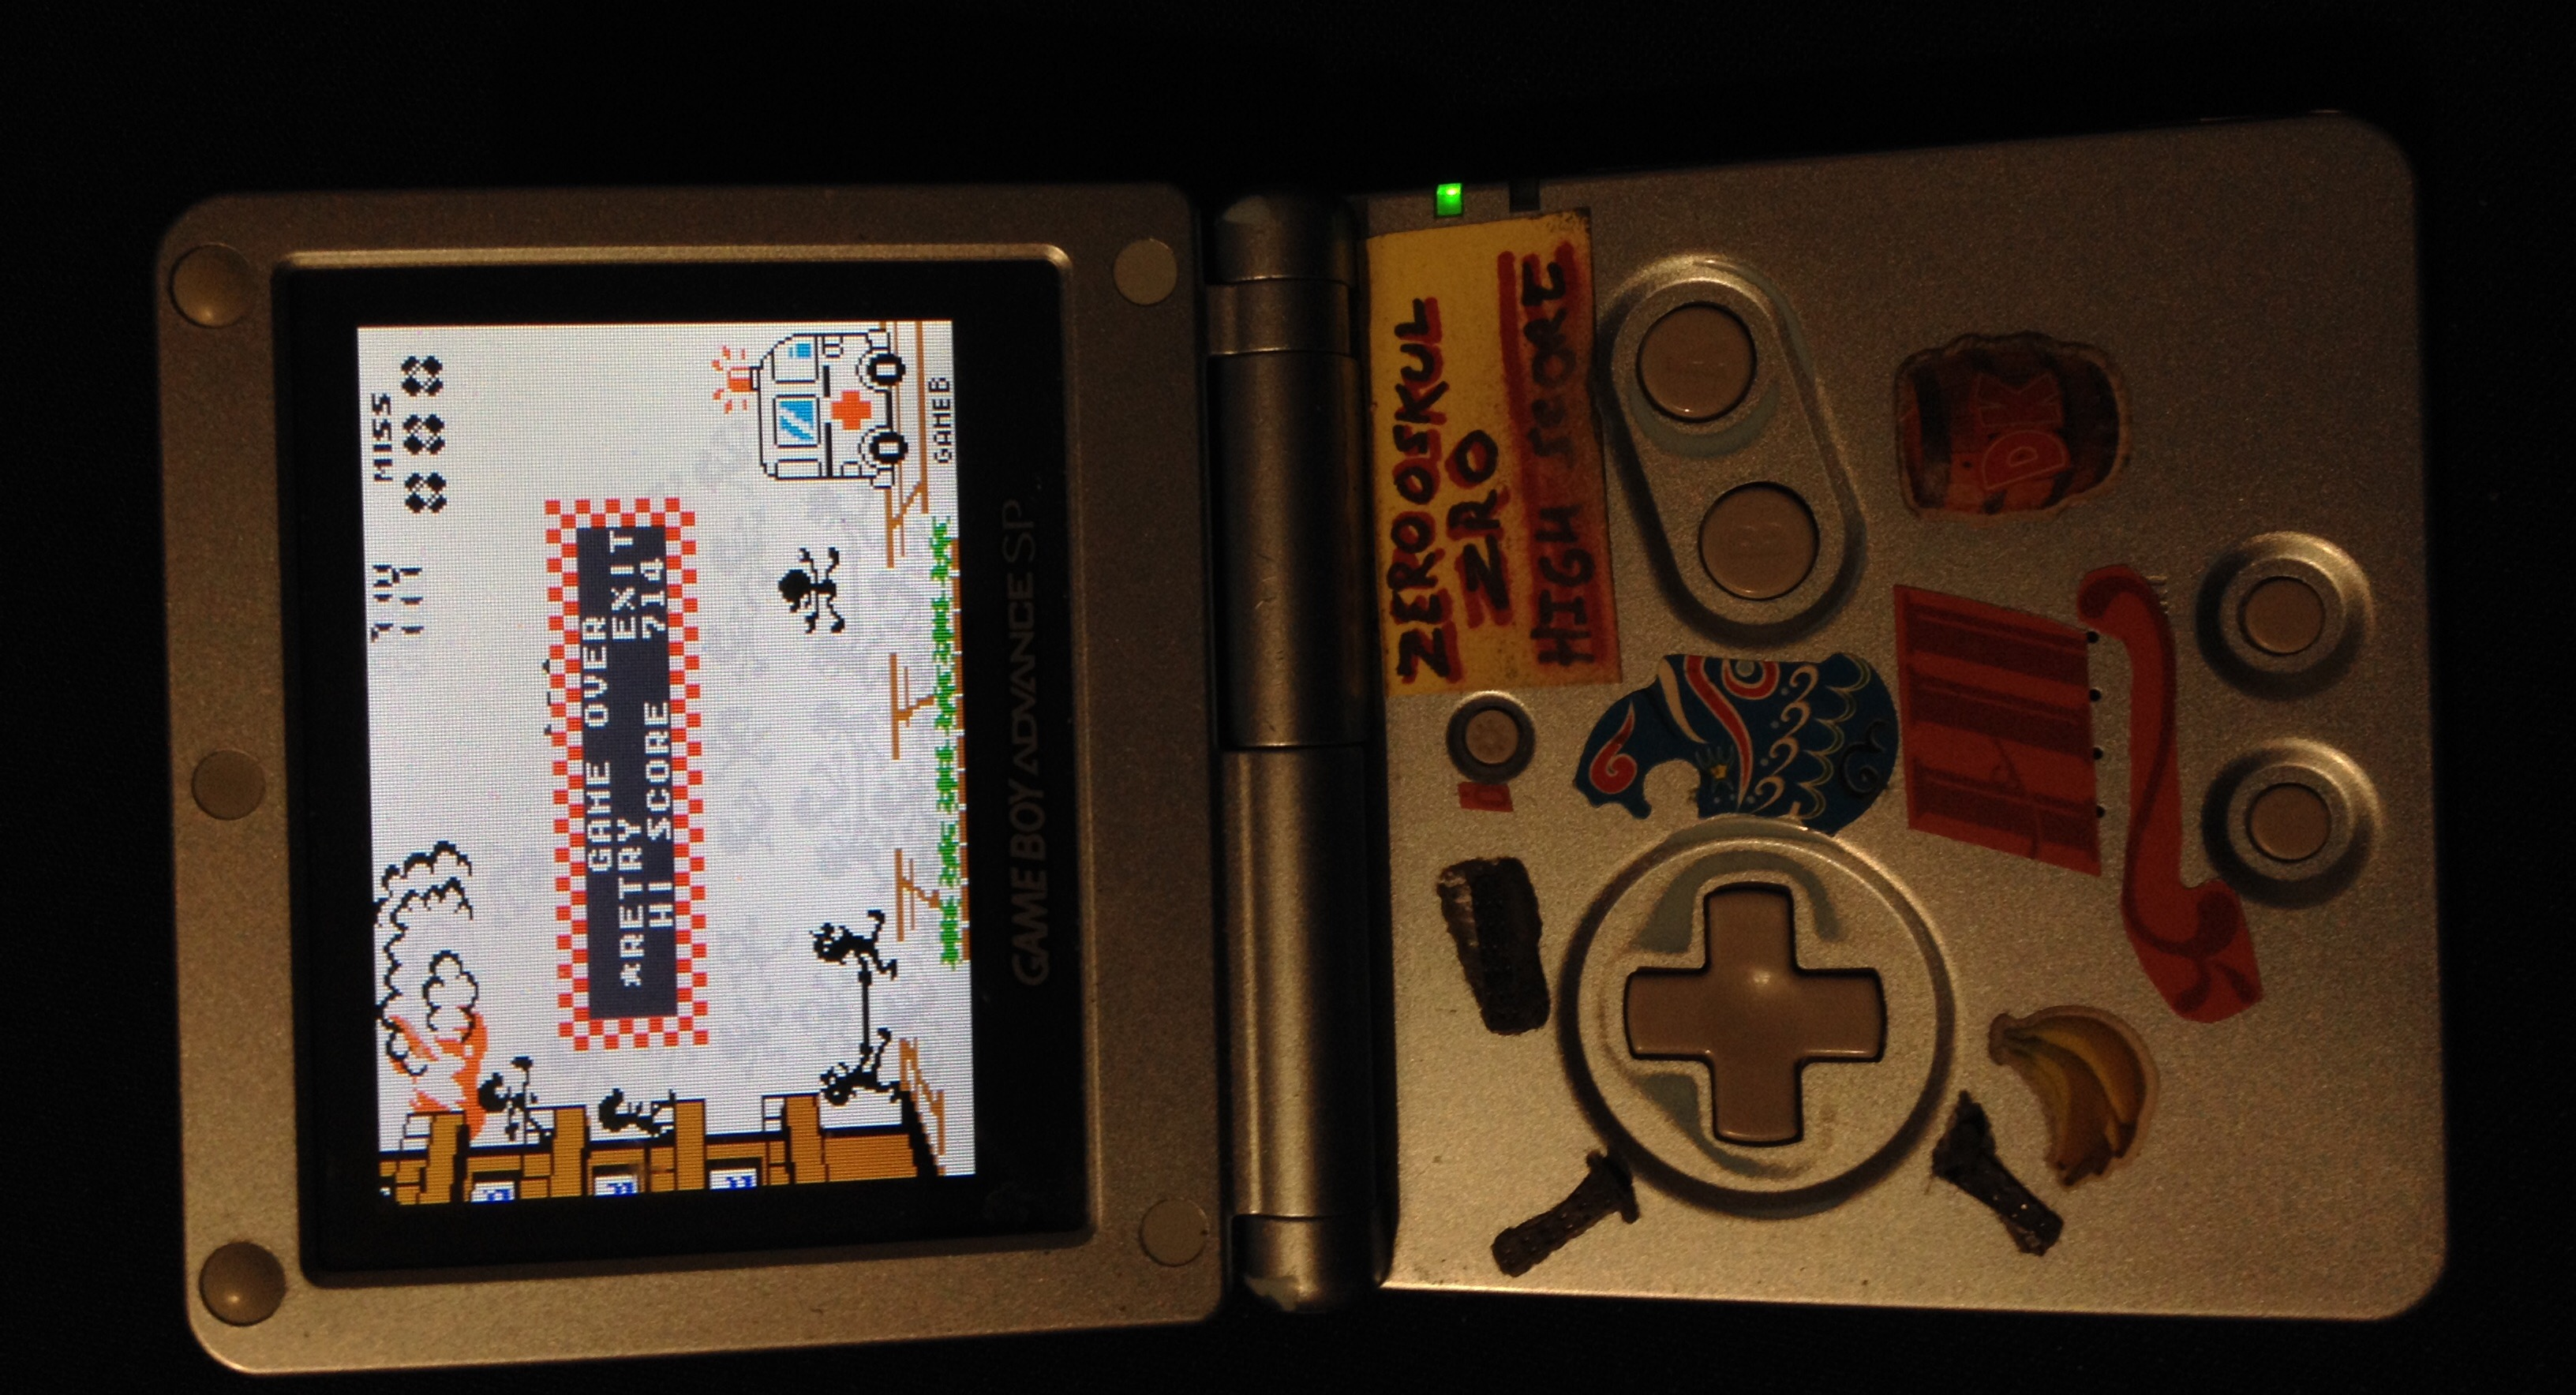 zerooskul: Game & Watch Gallery 4: Fire [Classic: Hard] (GBA) 714 points on 2019-12-13 20:04:23